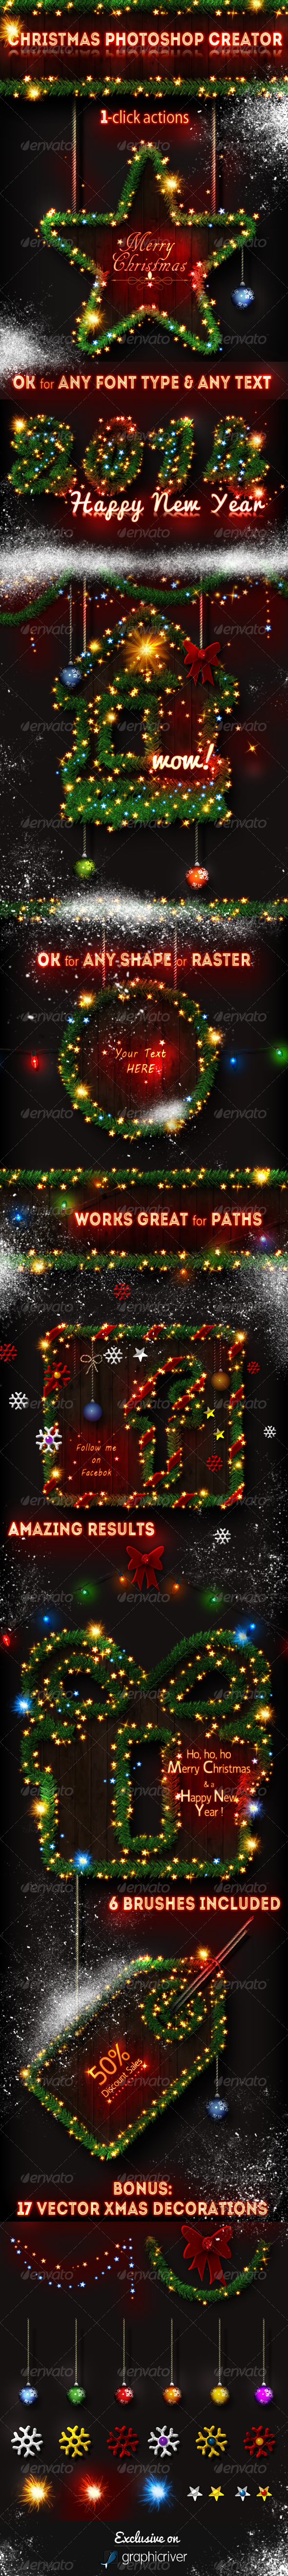 Christmas Tree Photoshop Creator - Utilities Actions